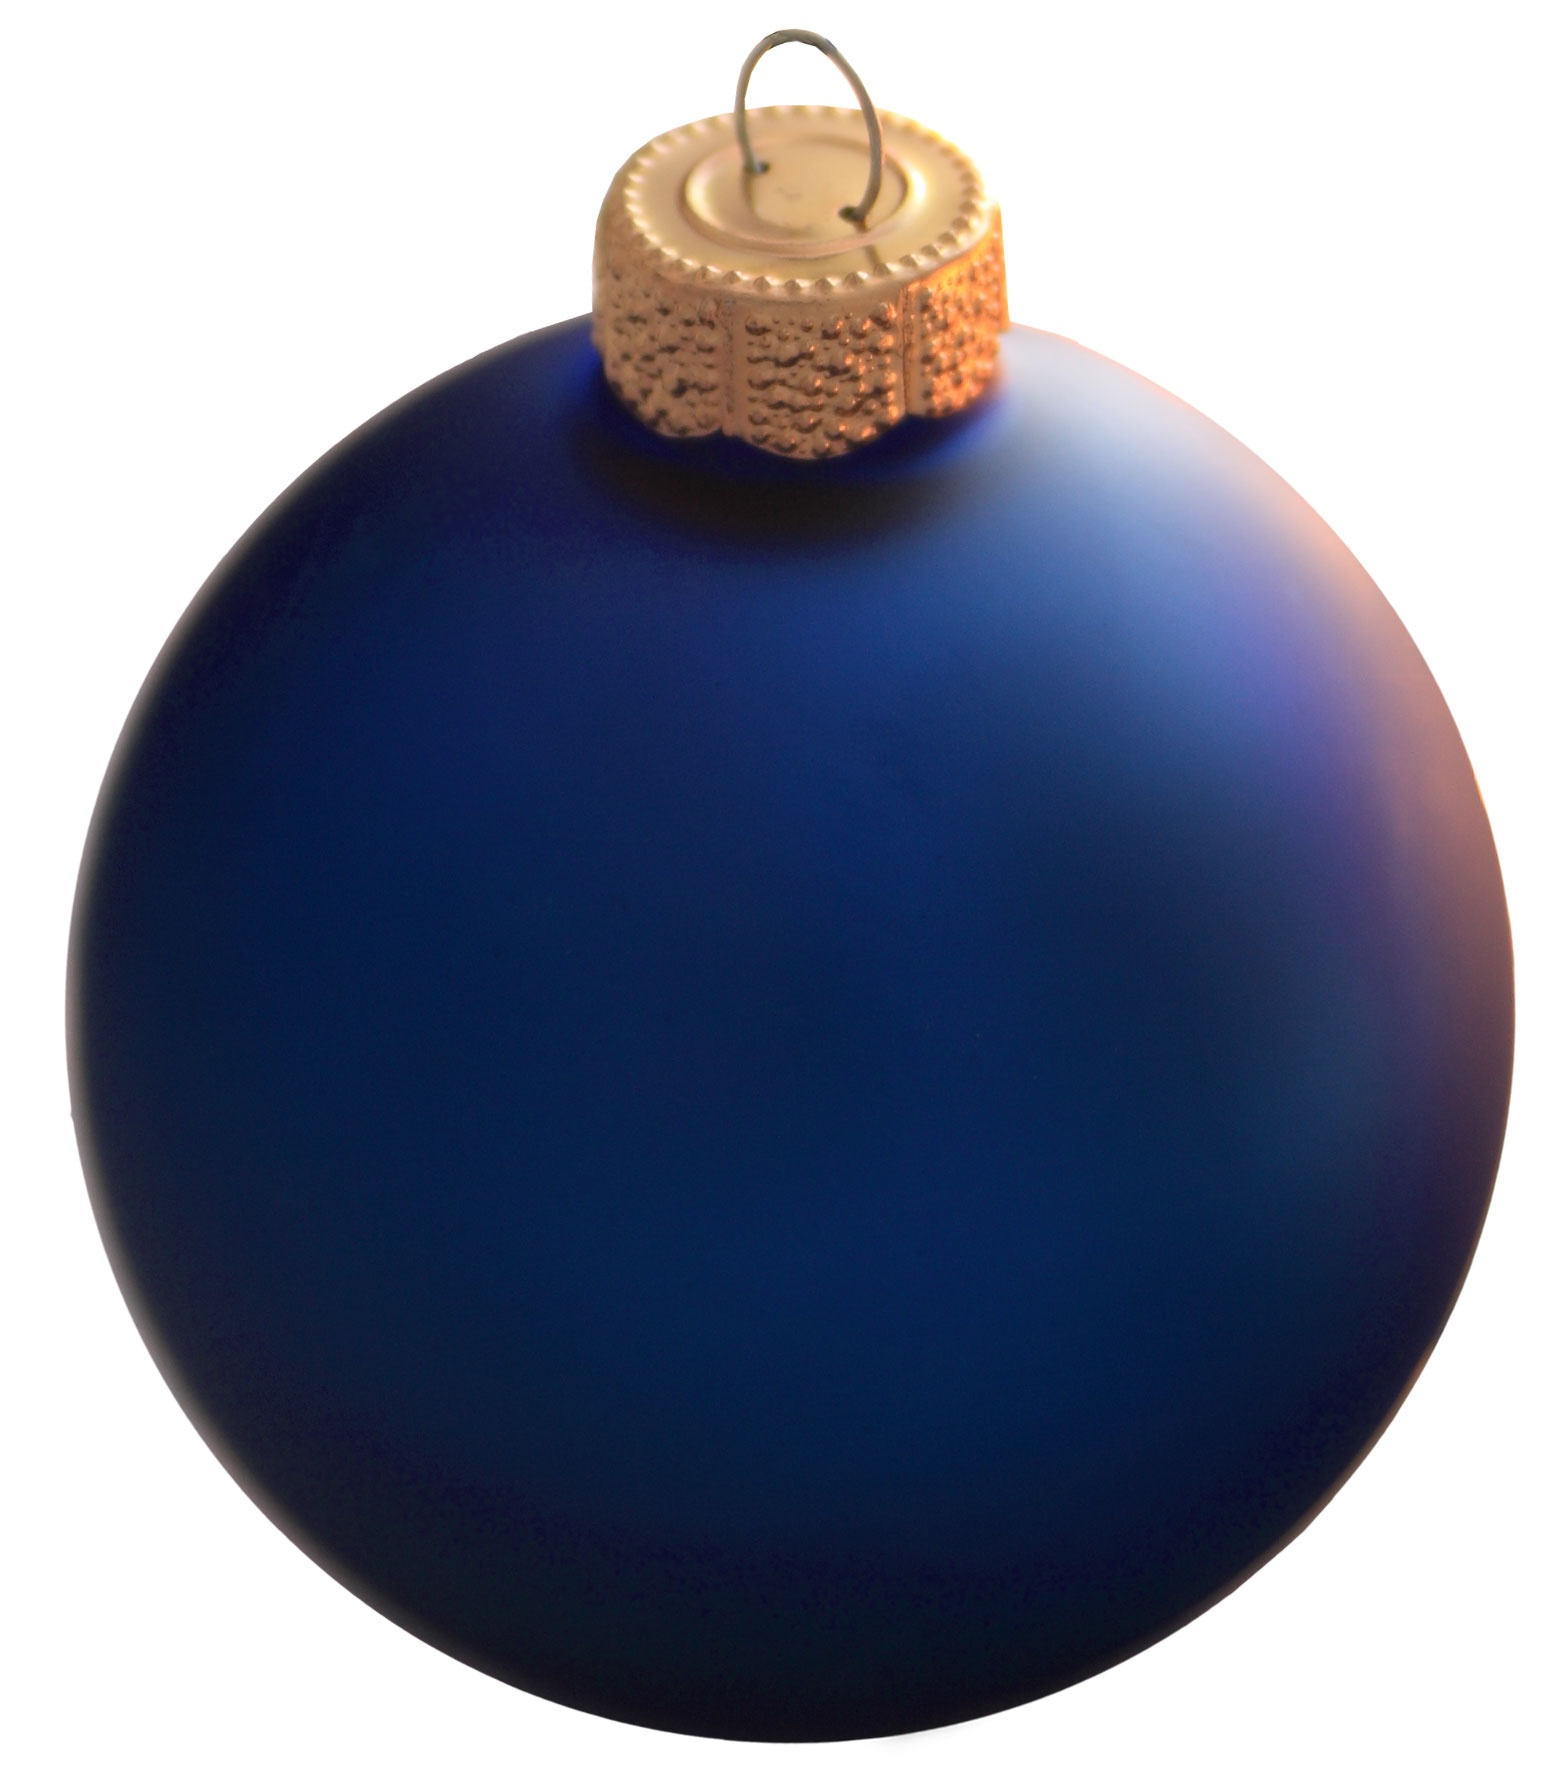 cobalt blue glass ball christmas ornament - Christmas Ball Decorations